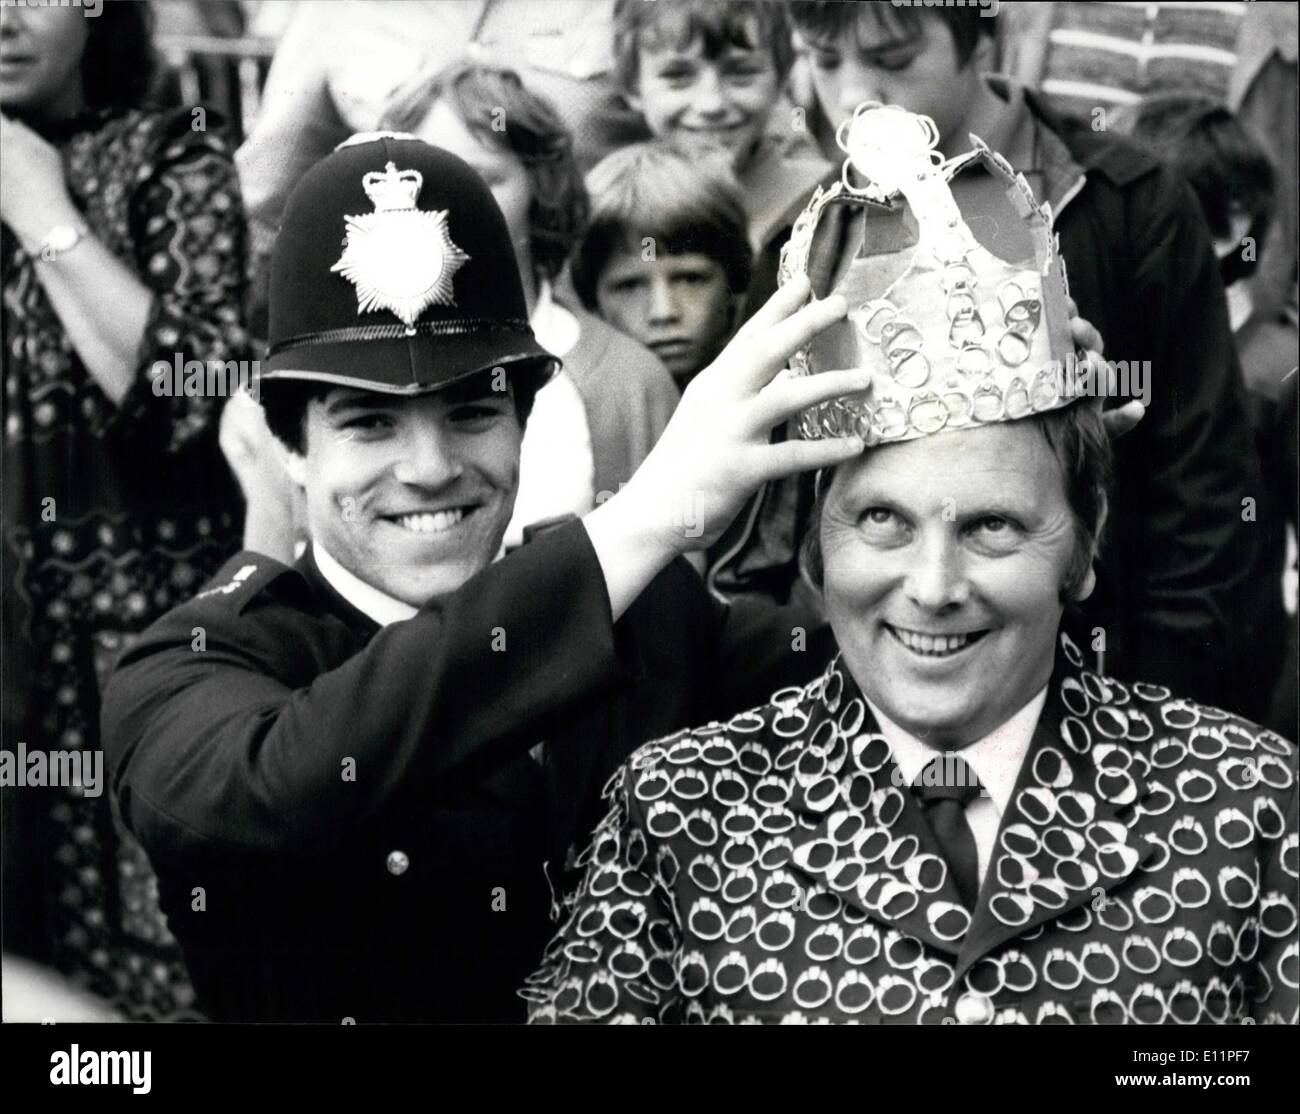 Aug. 08, 1979 - Bill Netting crowned 'Ring-Pull-King': Police Constable Bill Netting was today crowned 'Ring-Pull-King' of the world, because he has collected 66 million ring pulls form cans of drink to help the National Kidney Research Fund. The ring pulls are made of non-farrous metal and are sold to metal dealers for the vital cash needed to step-up kidney research in Britain. Photo shows Pc Nickolas Fenn seen crowning his fellow officer Bill Netting during a ceremony at the Tower of London today. - Stock Image